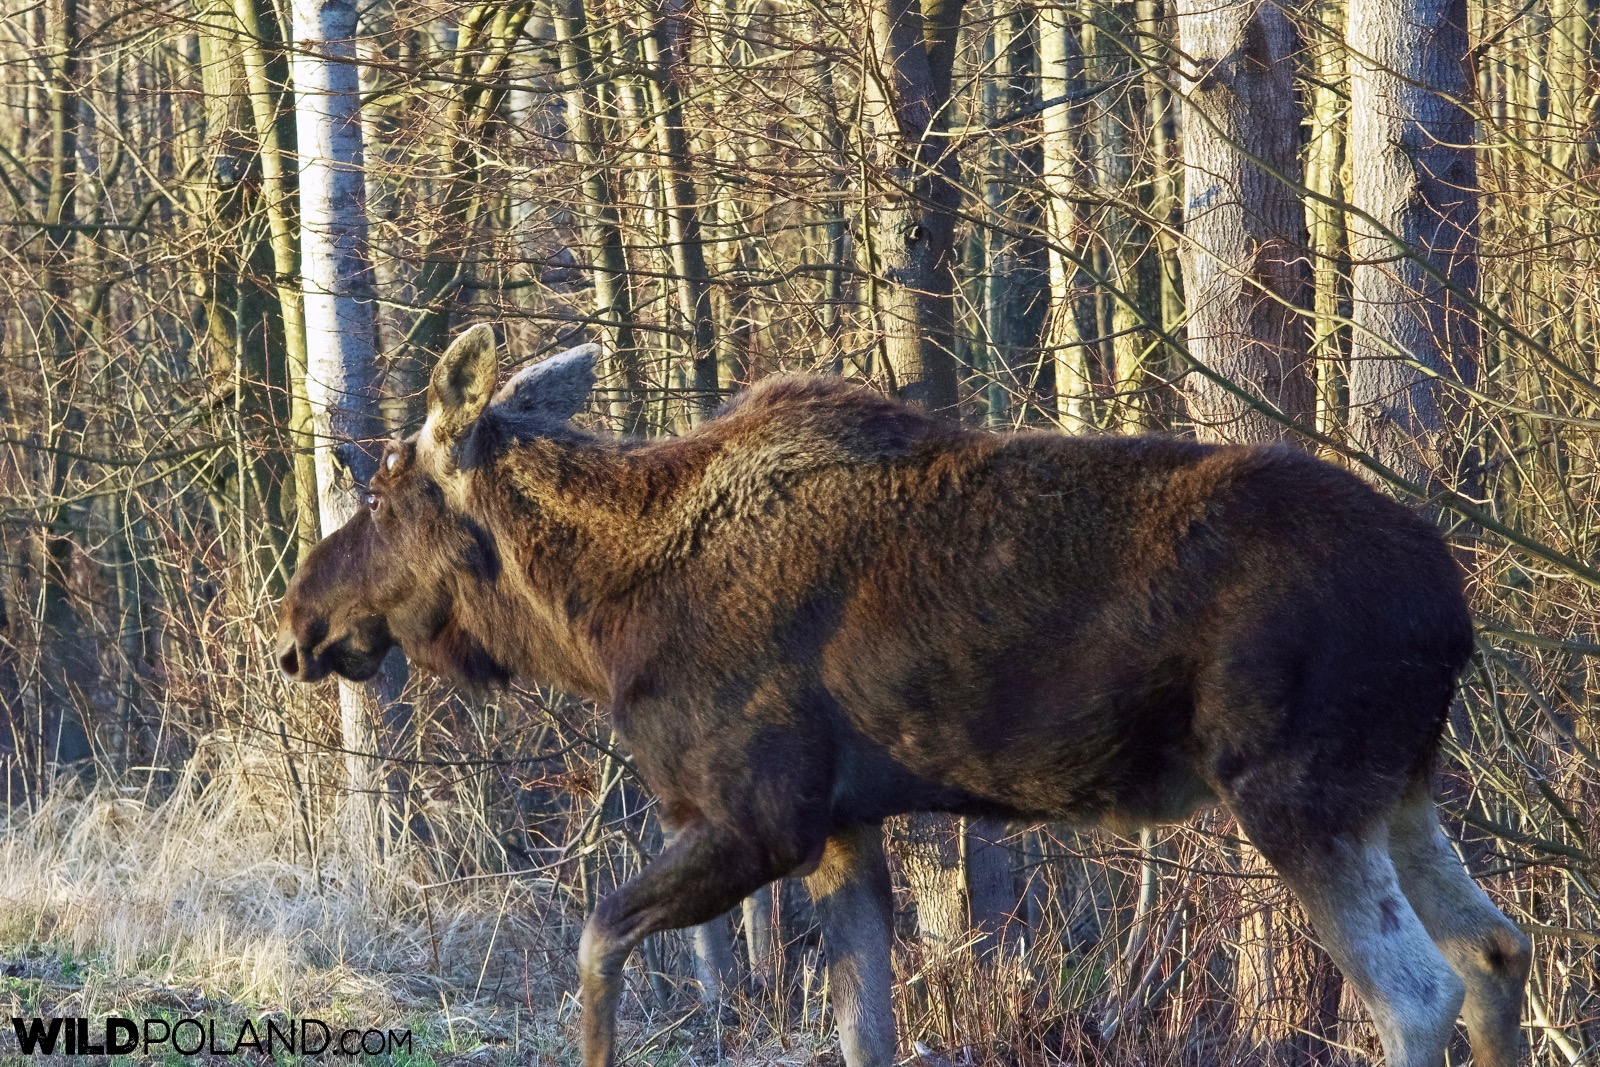 Elk (Moose) walking at the roadside at the Biebrza Marshes, photo by Andrzej Petryna